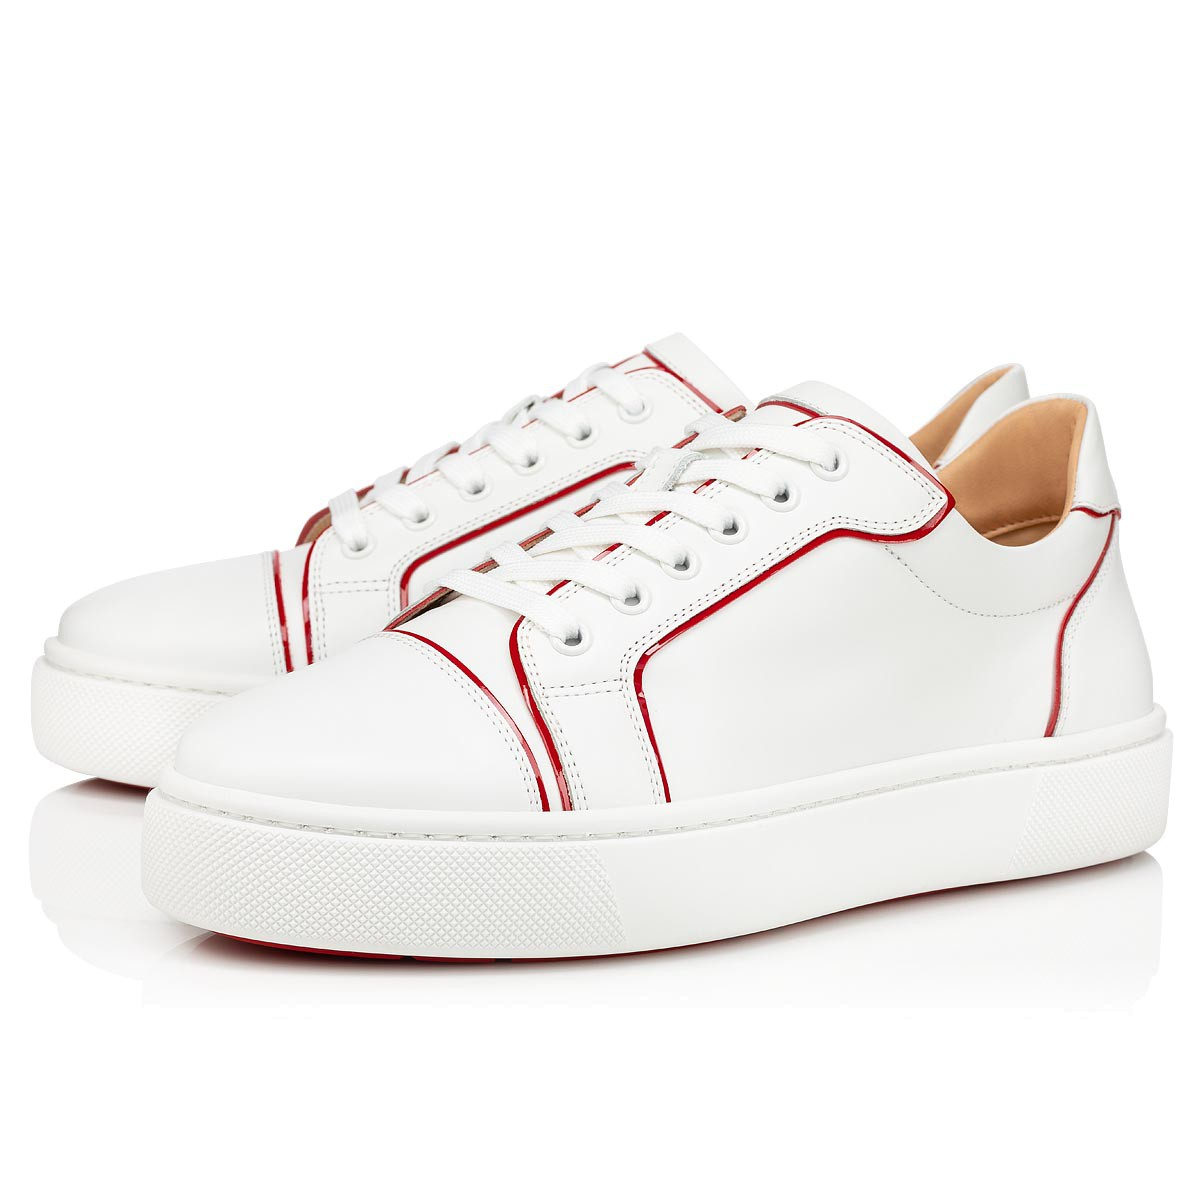 women christian louboutin sneakers